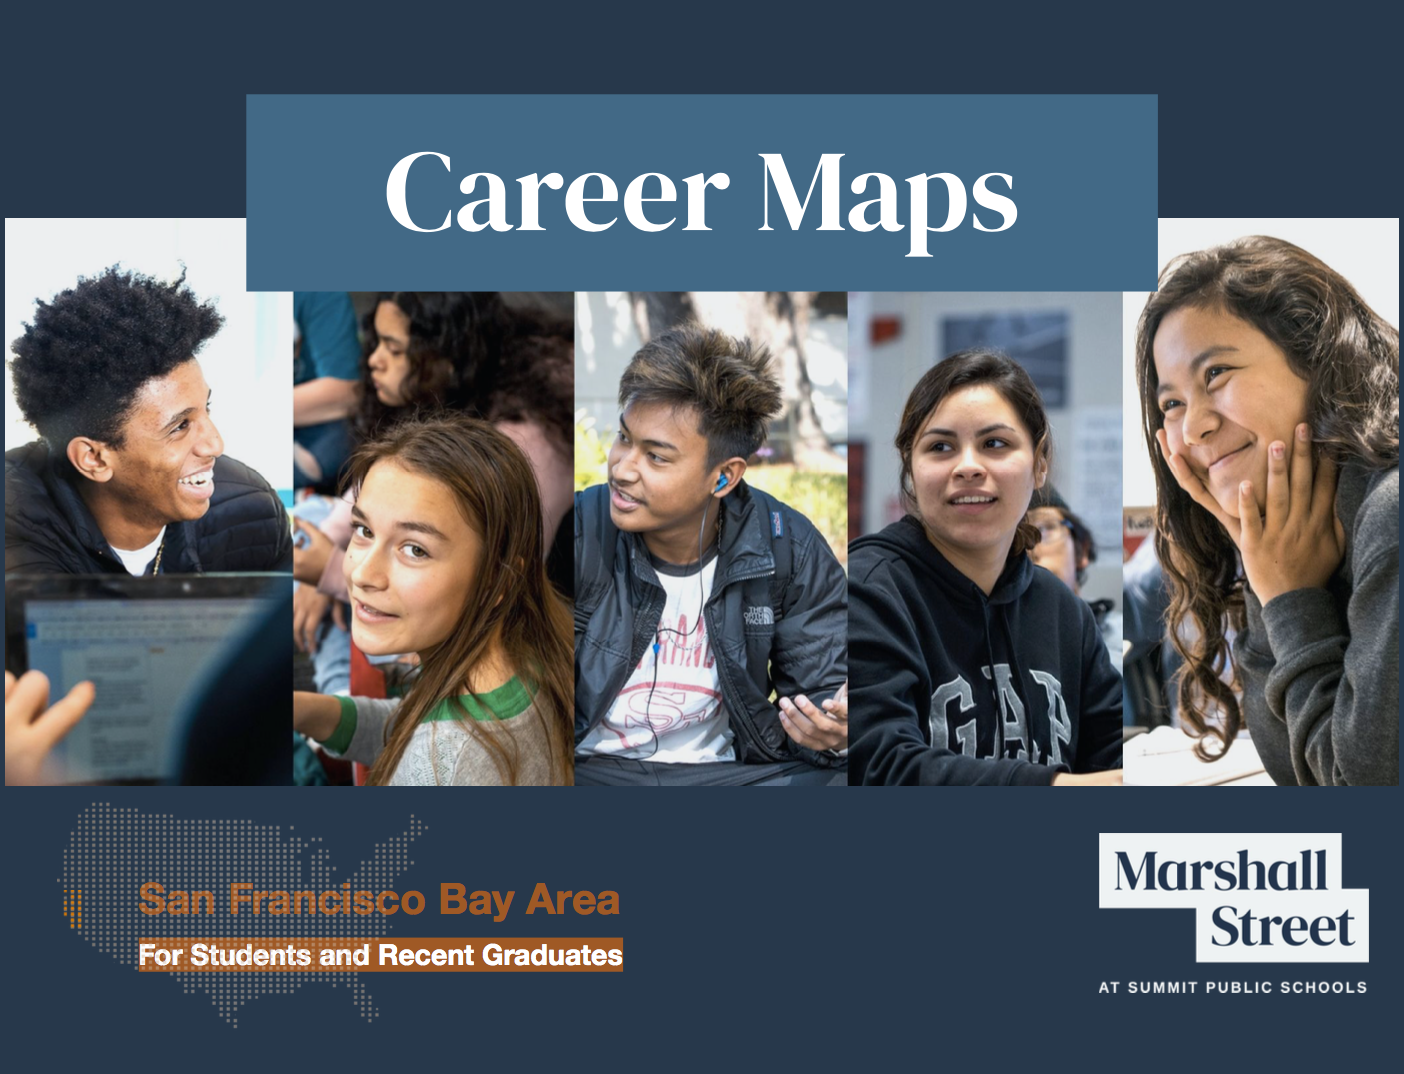 Career Maps leverage community capital in the San Francisco Bay Area for K-12 students and graduates